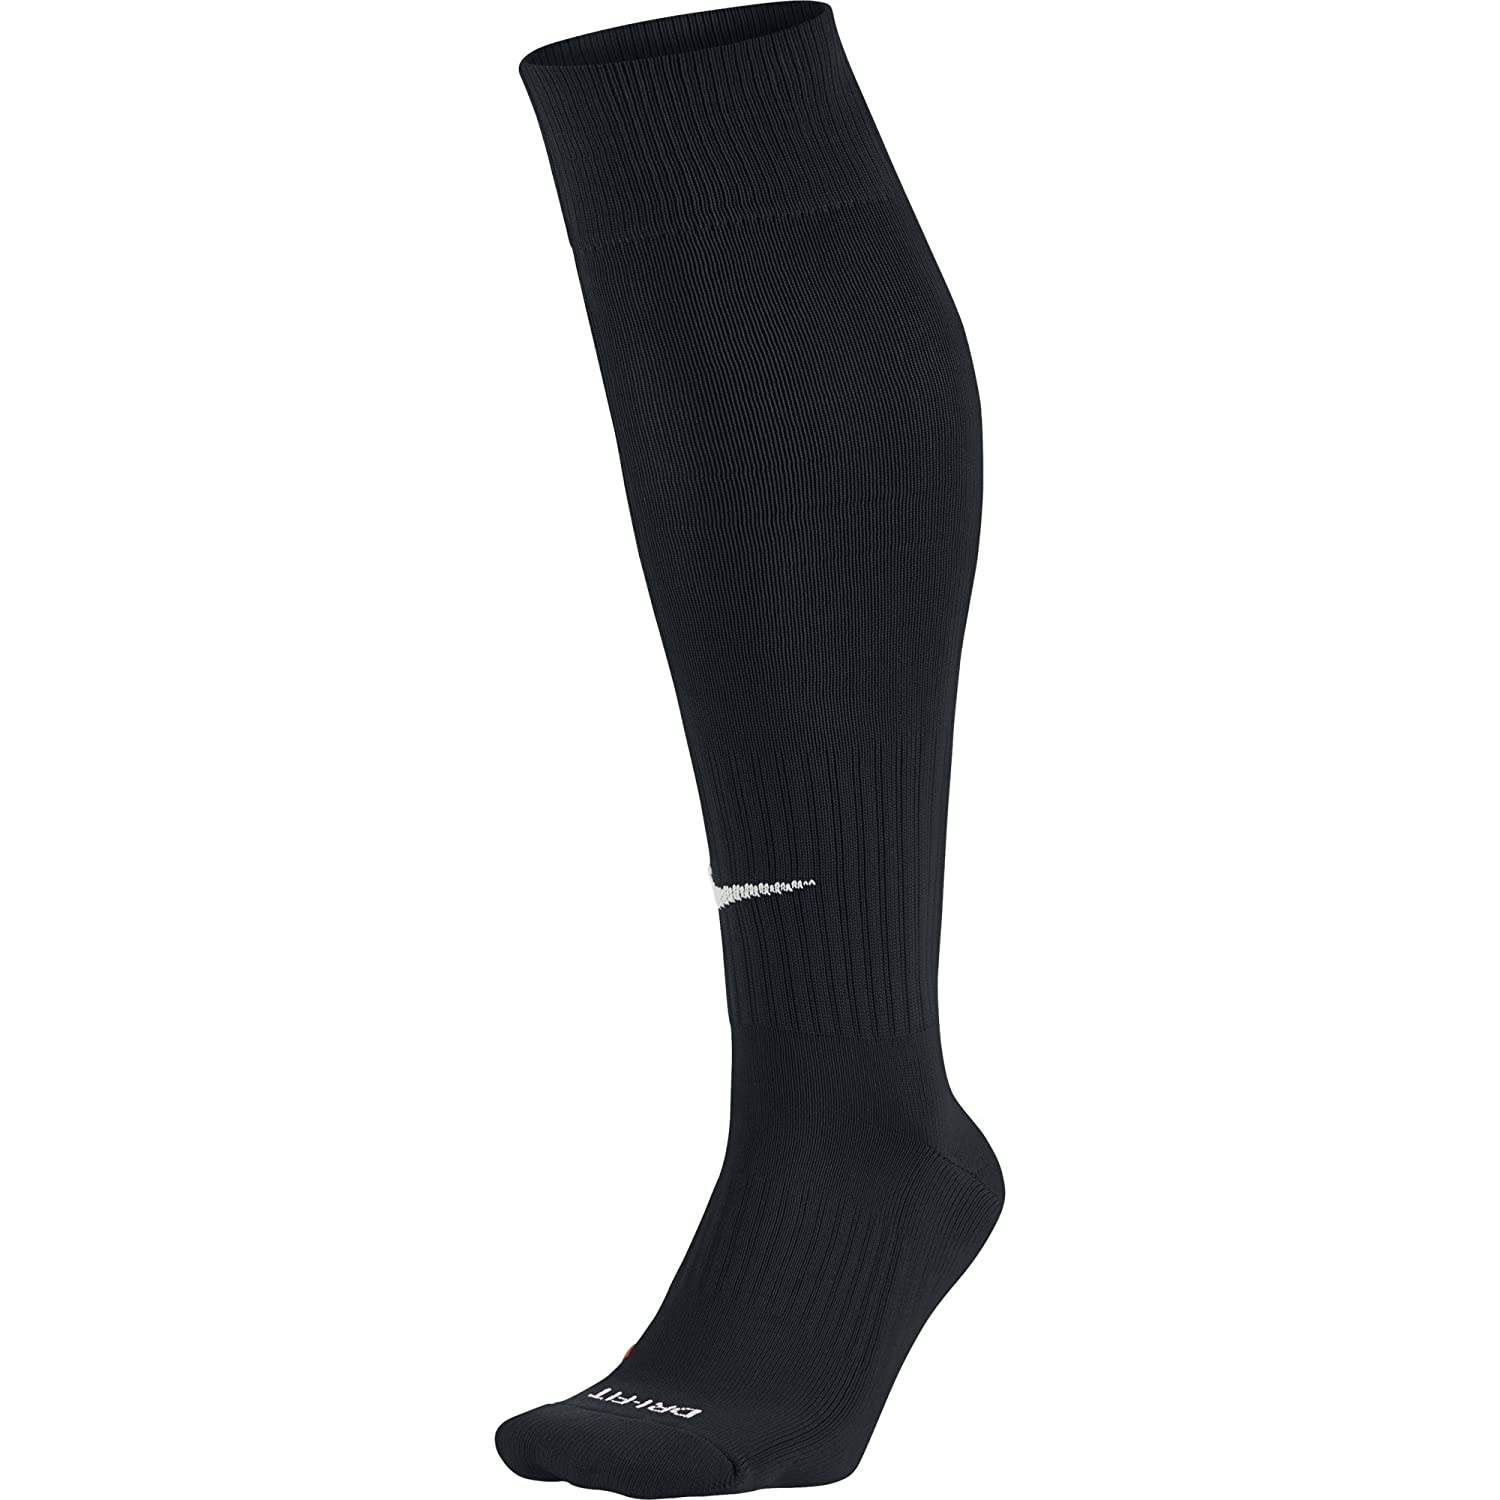 Nike Knee High Classic Football Dri Fit Calcetines, Unisex Adulto: Amazon.es: Zapatos y complementos